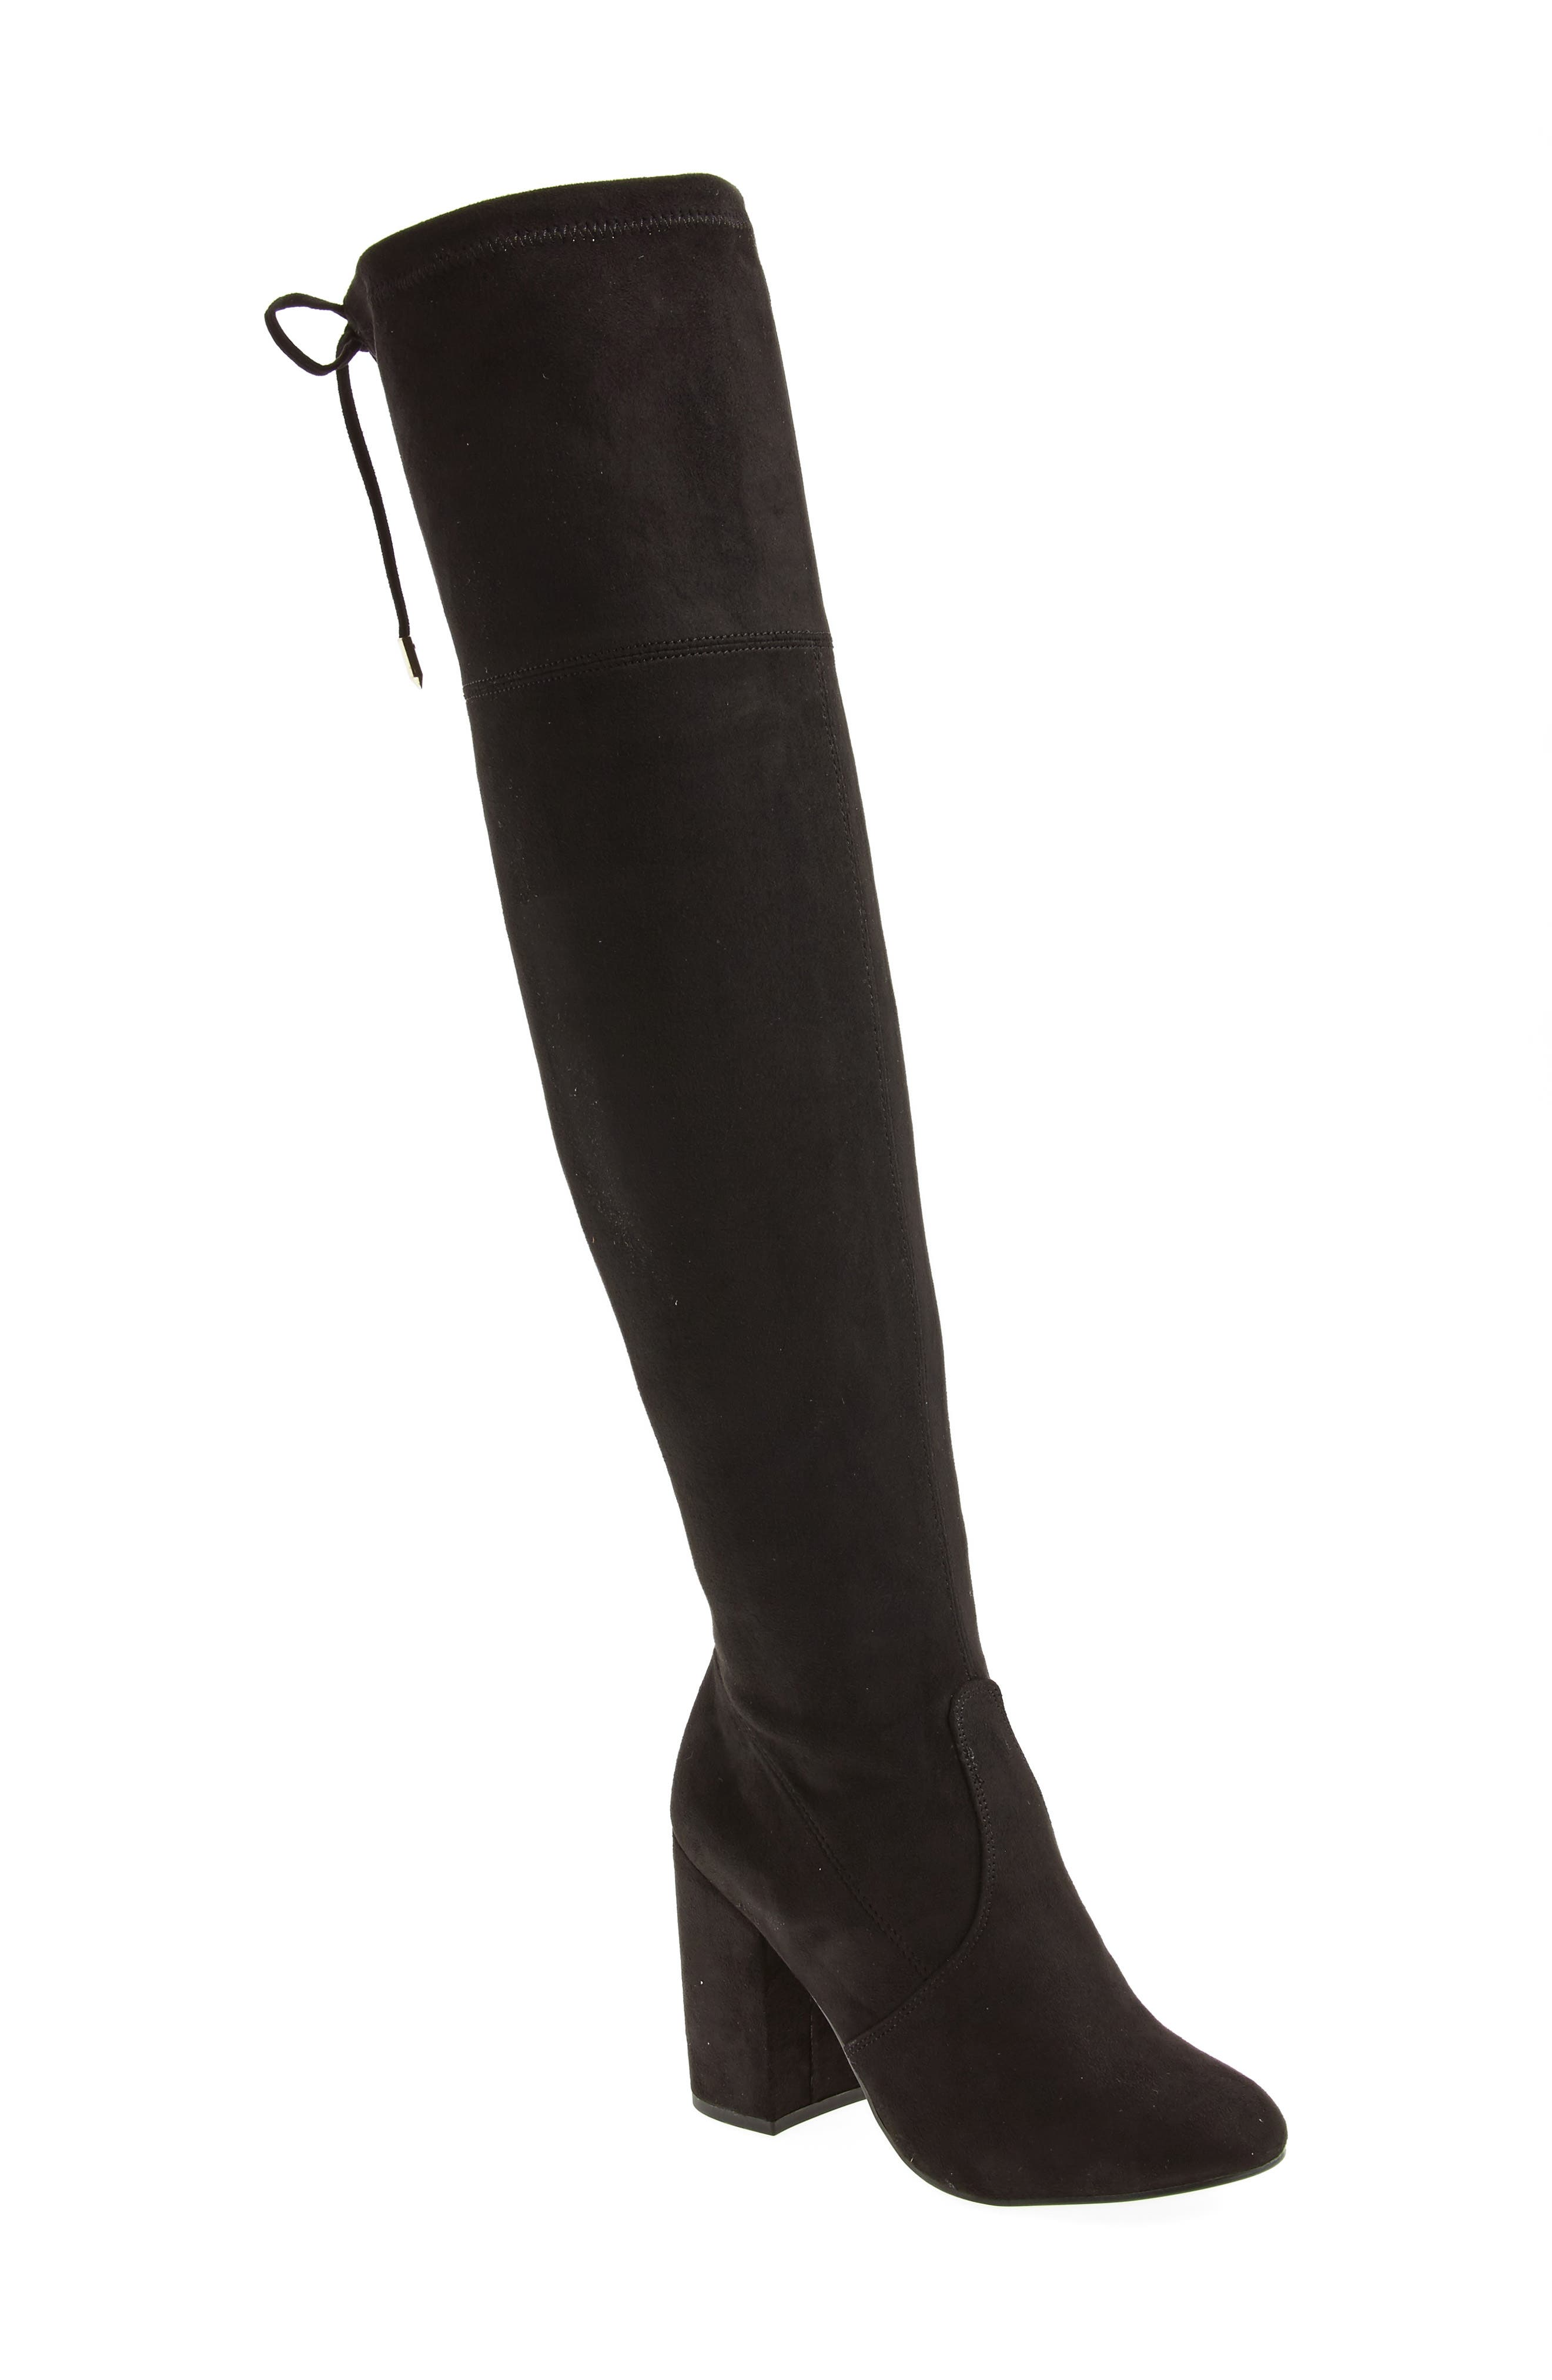 Main Image - Steve Madden Niela Stretchy Over the Knee Boot (Women)